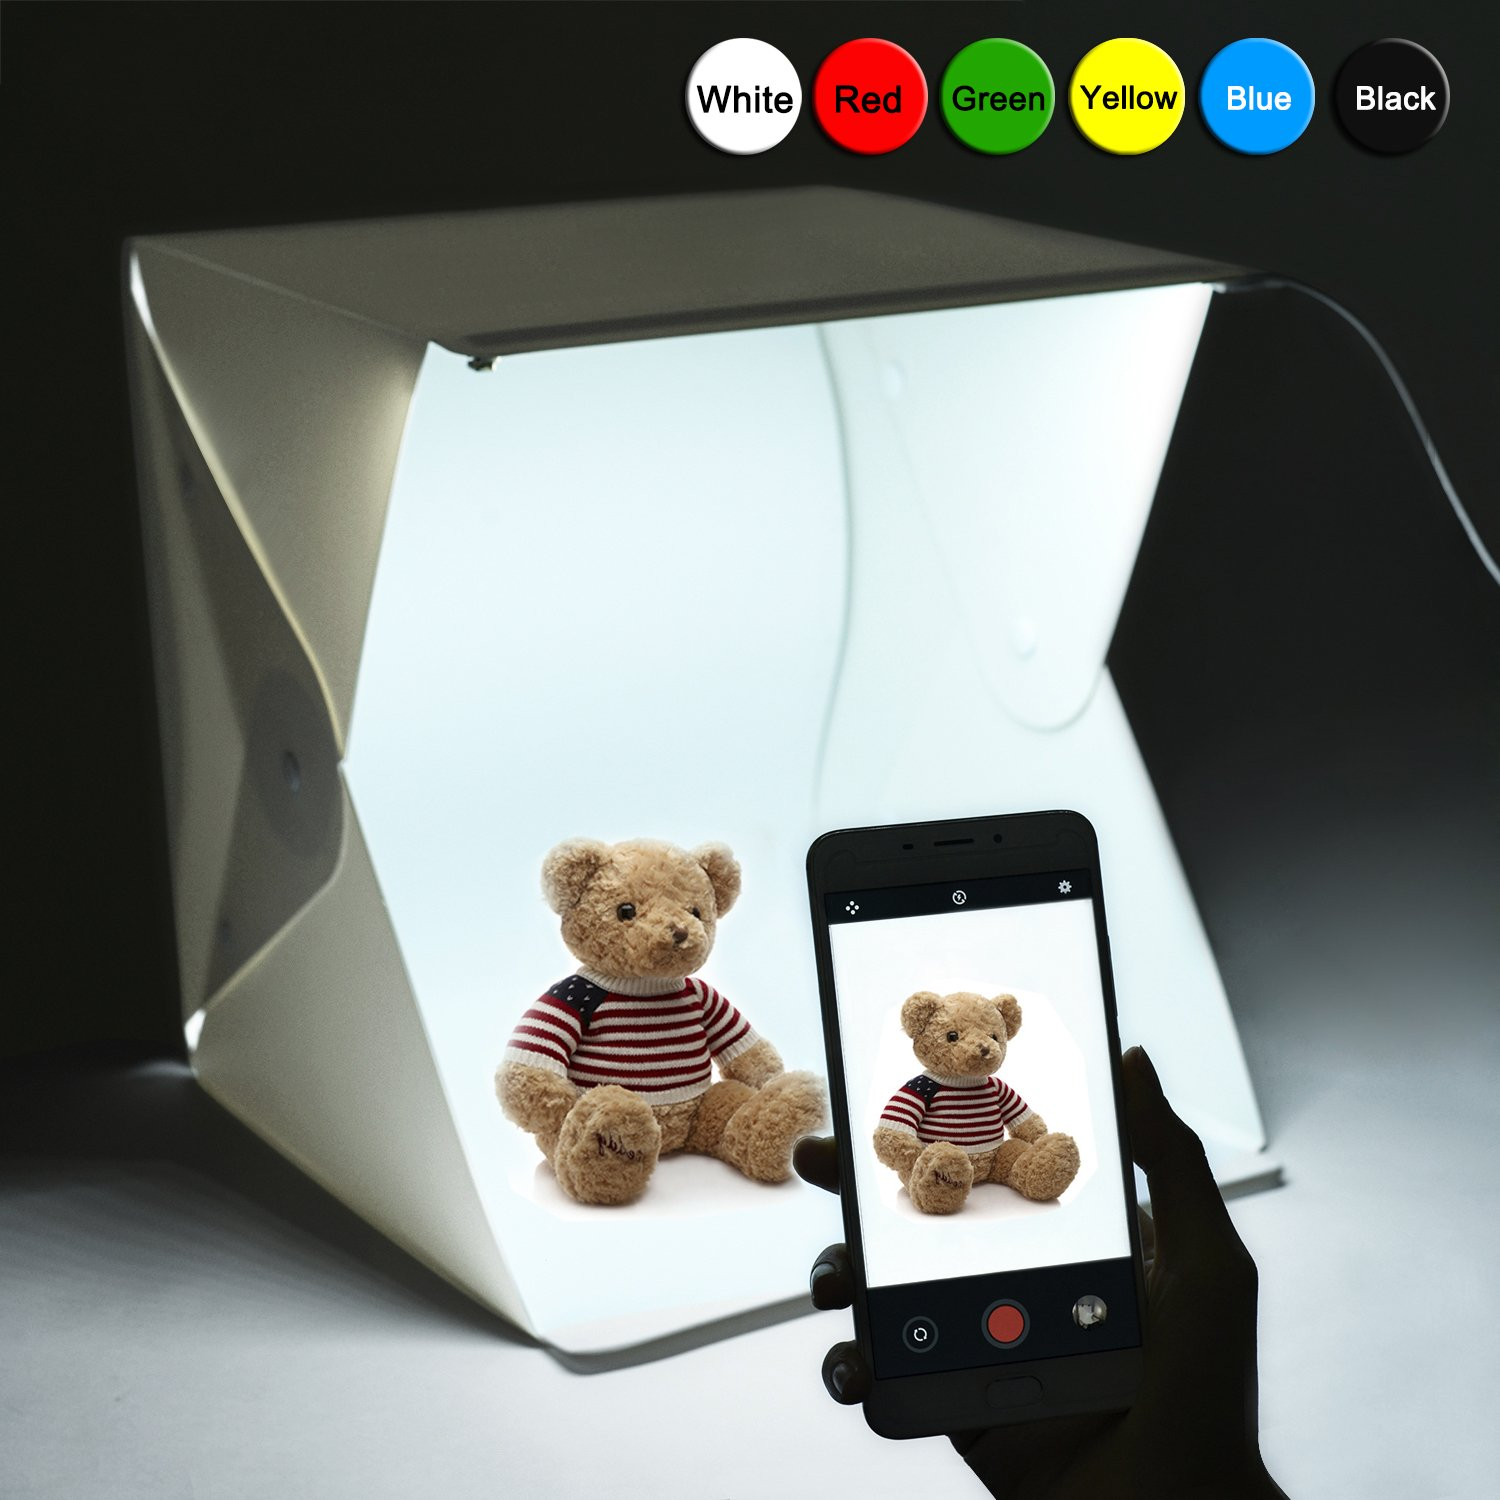 Donwell Portable Photo Studio Tent Light Box Folding Photography Shooting Kit with Adjustable LED Lights and 6 Colors Background New 2018 (Size: 9.8'' x 9.5'' x 9'') by DONWELL (Image #9)